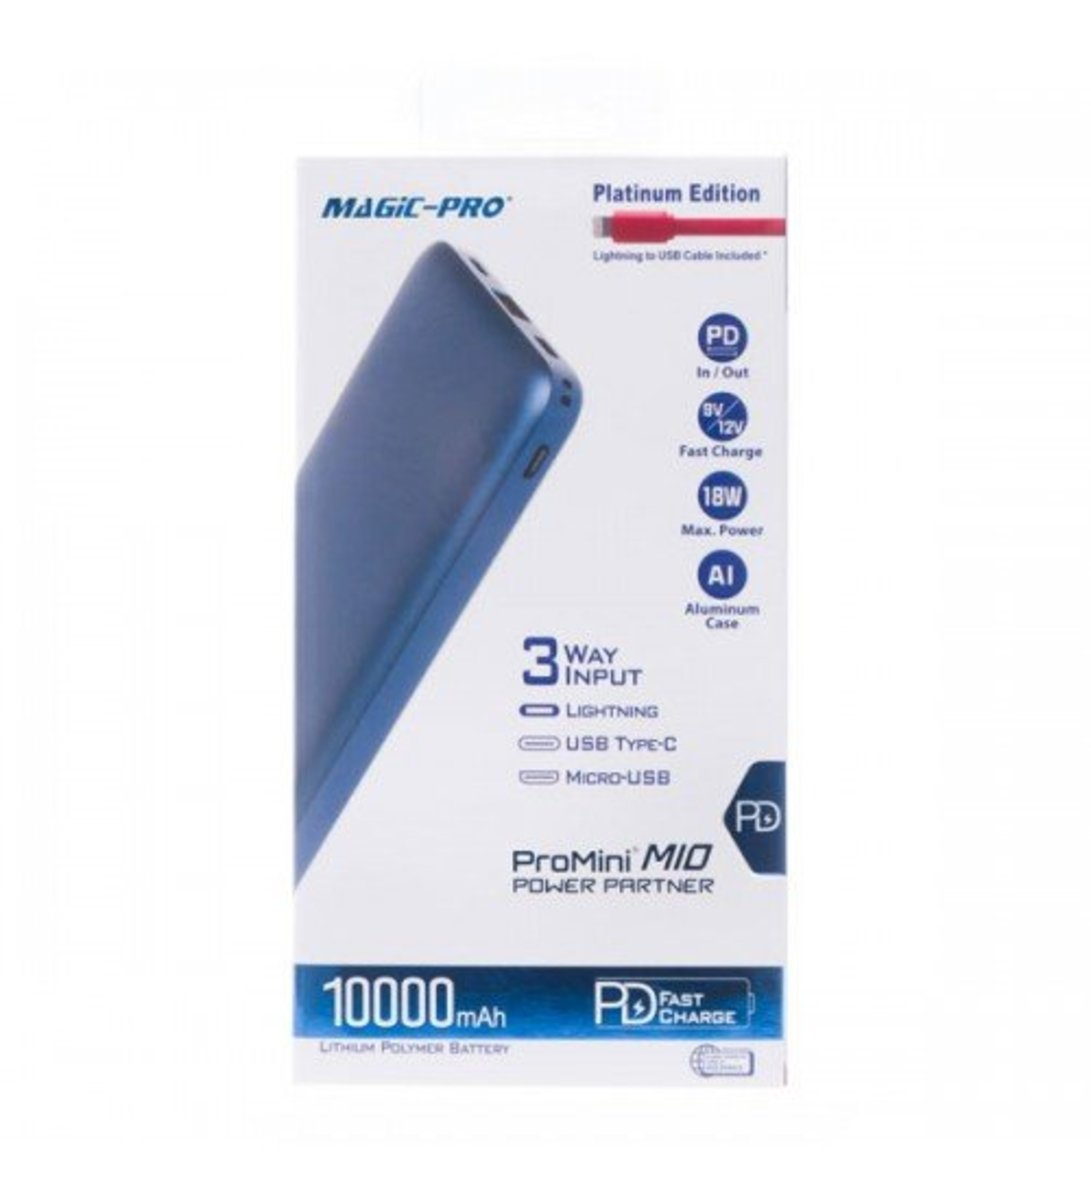 ProMini M10 PD Fast Charge Portable Charger Power Bank[Blue]